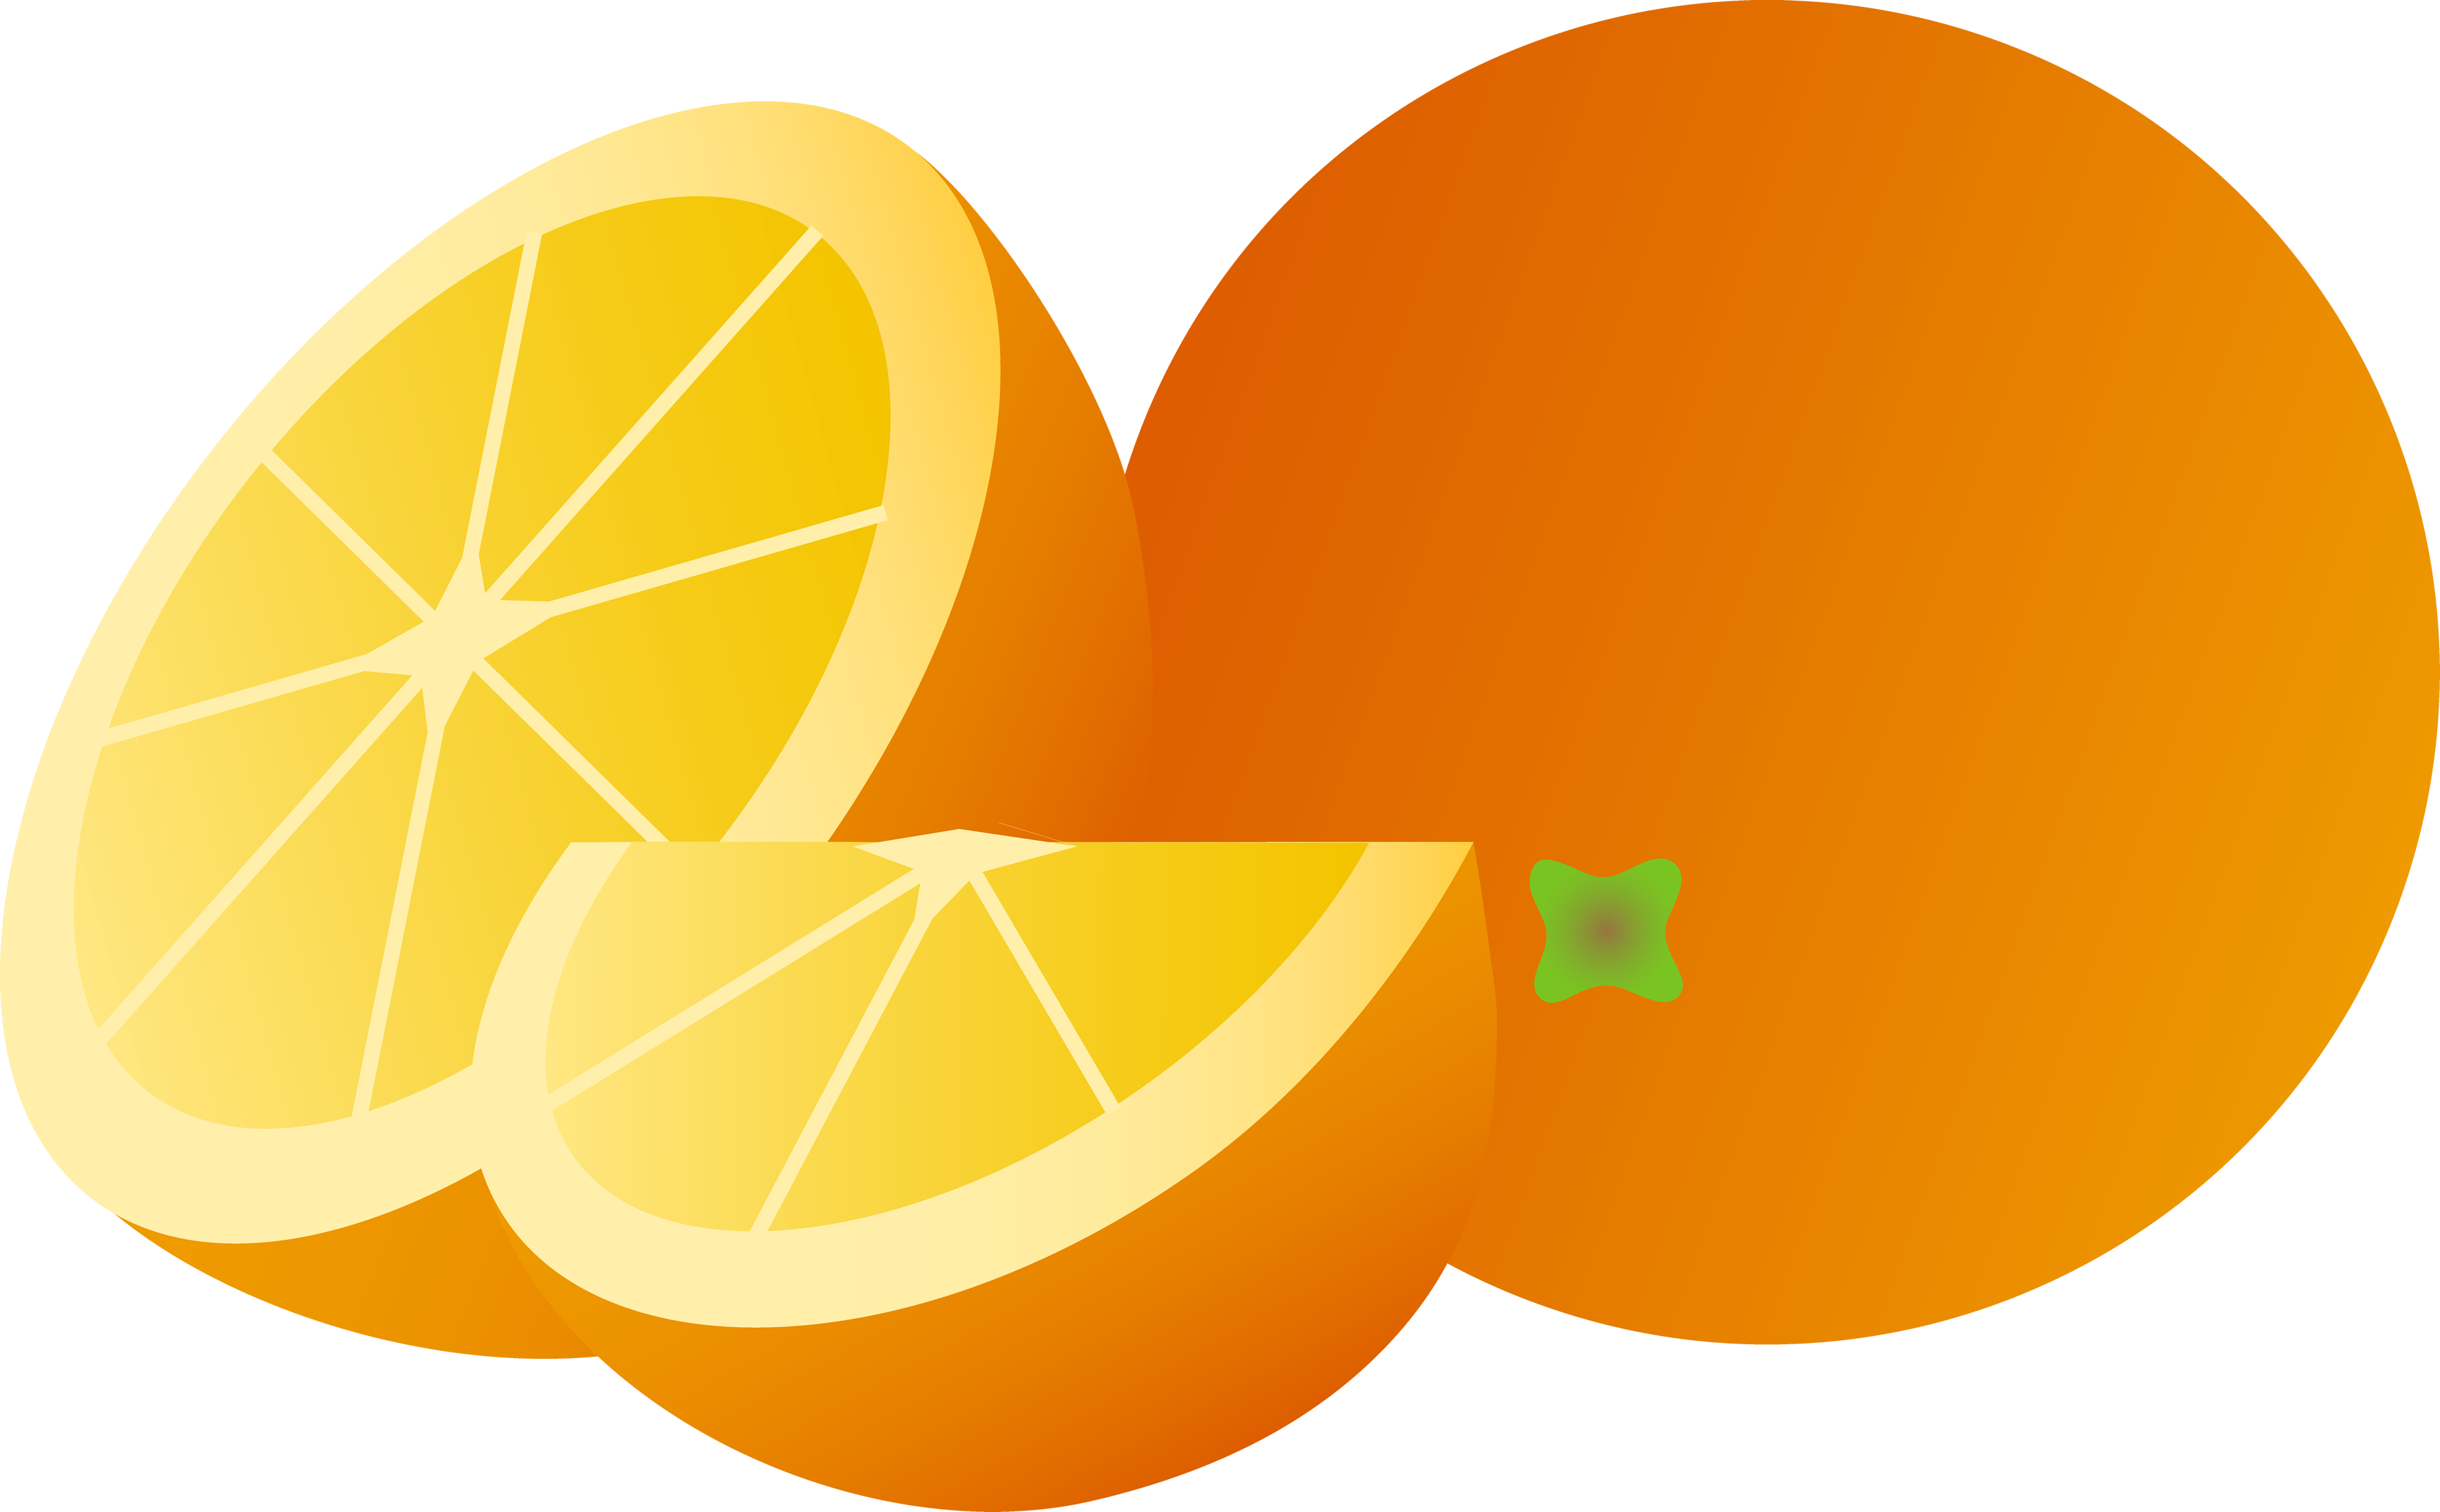 Orange PNG image, free downlo